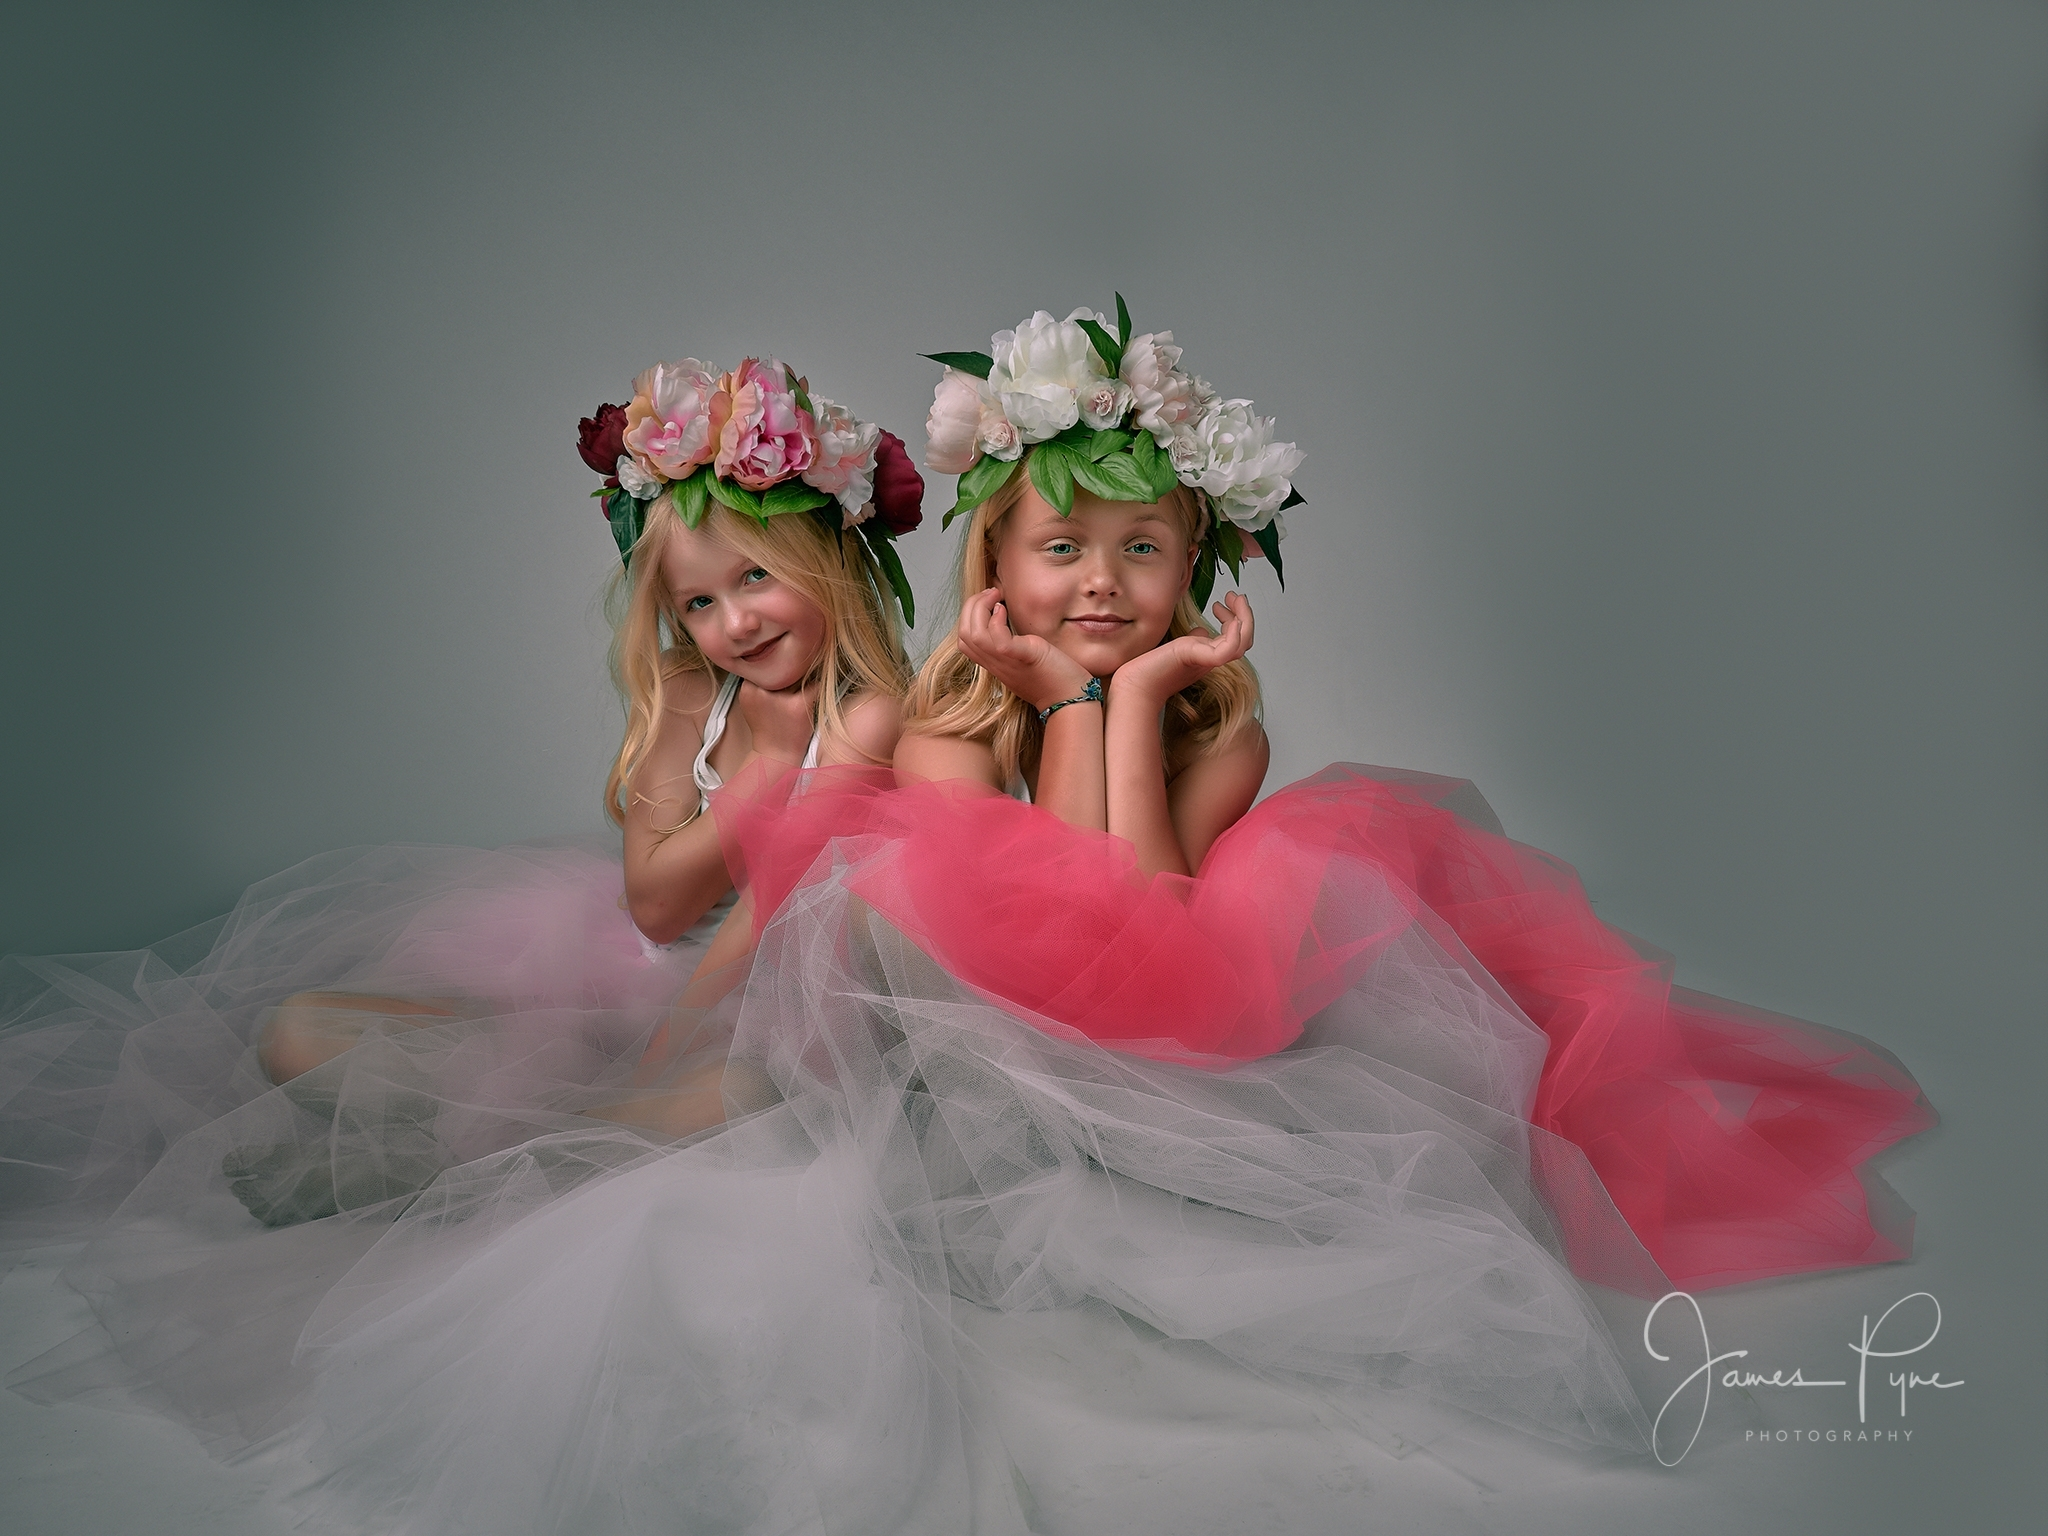 James Pyne Photography Melbourne, Frankston, Somerville & Mornington Peninsula children & Family Photographer